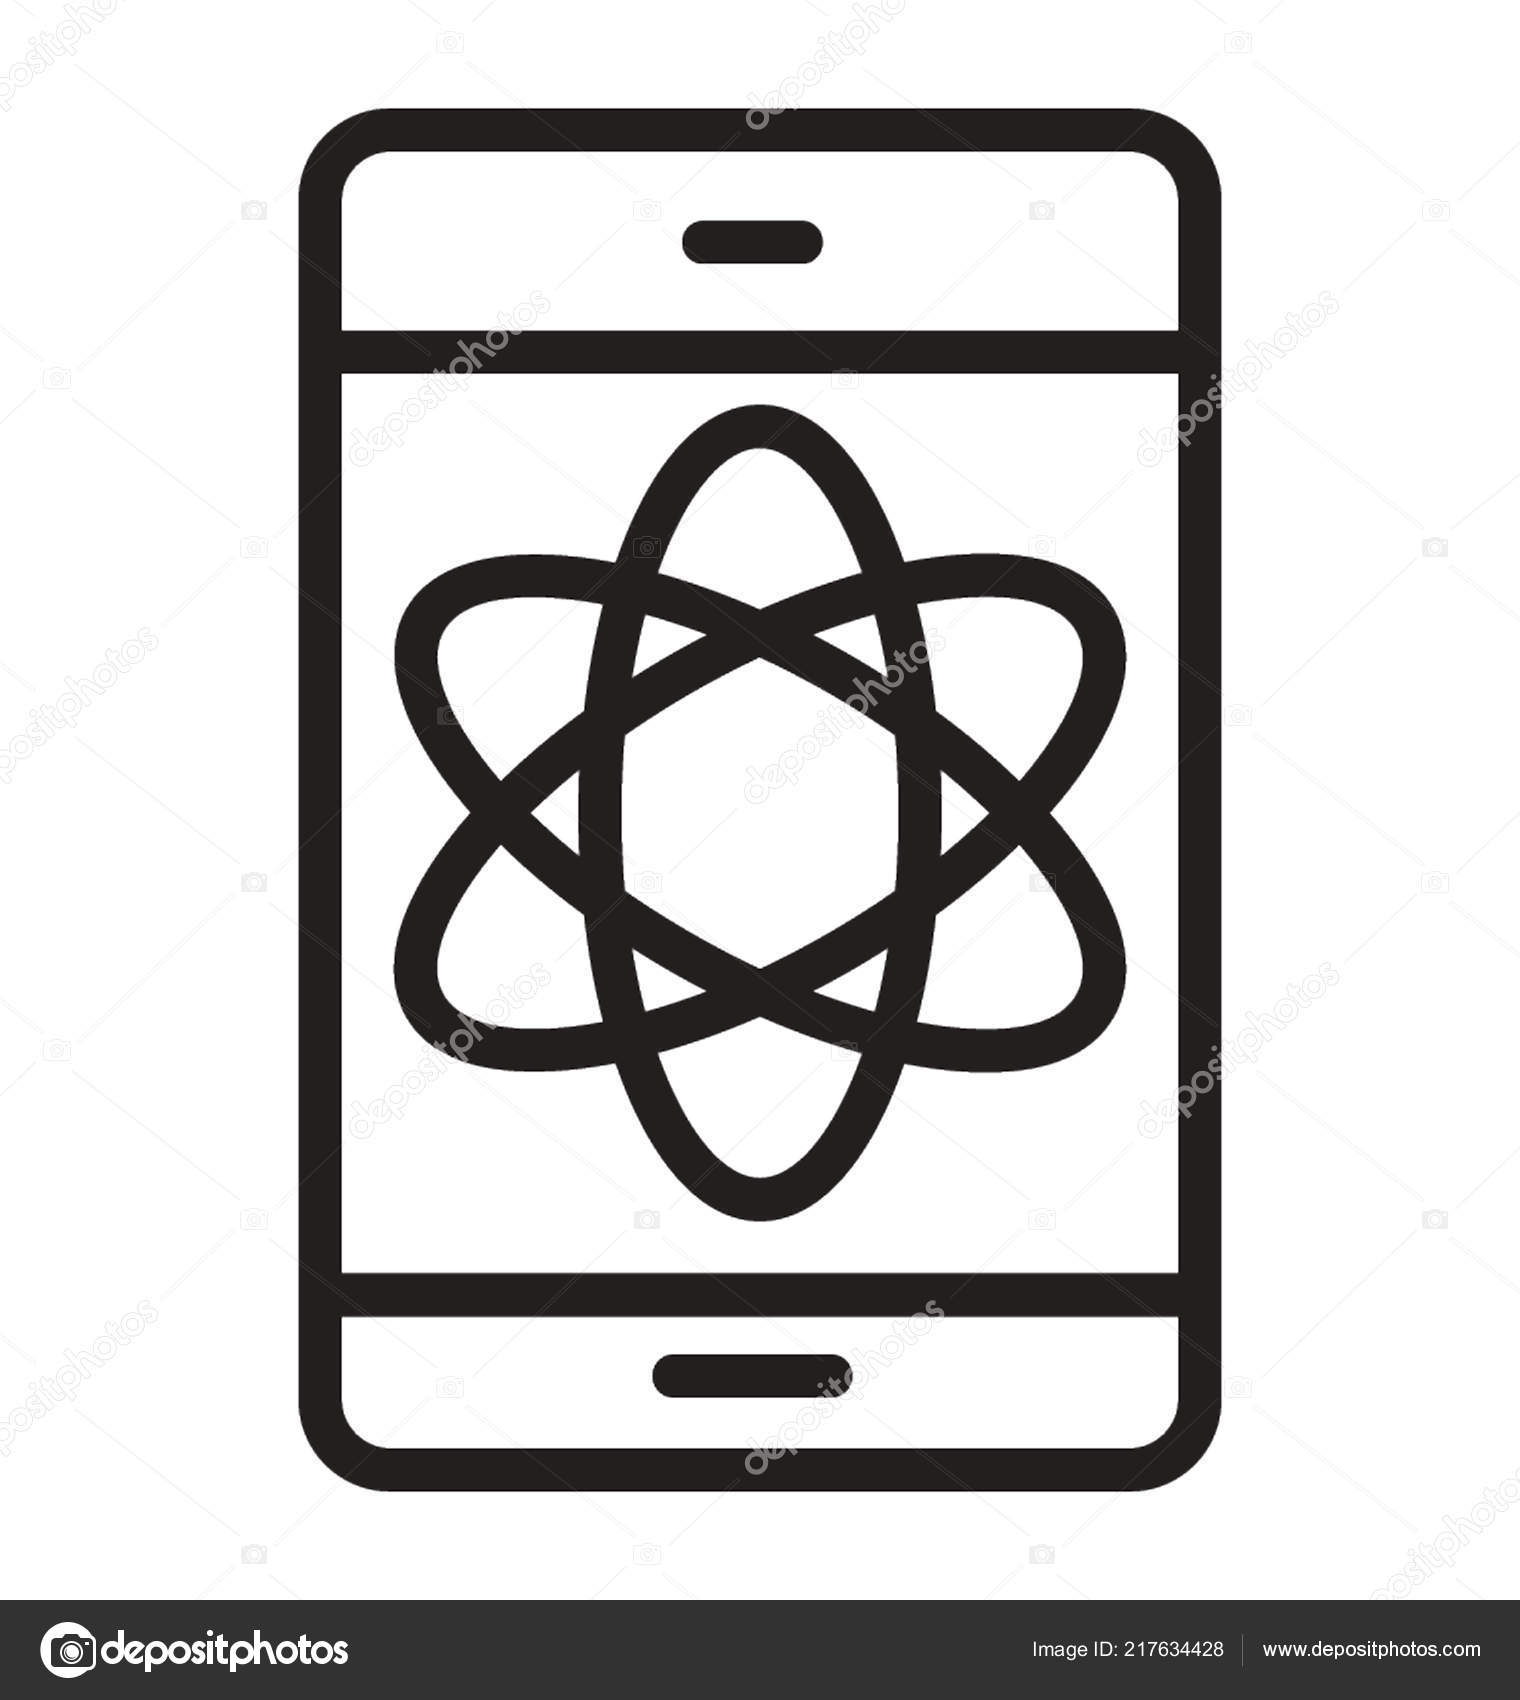 Atomic Sign Embedded Mobile Screen Icon Data Science — Stock Vector